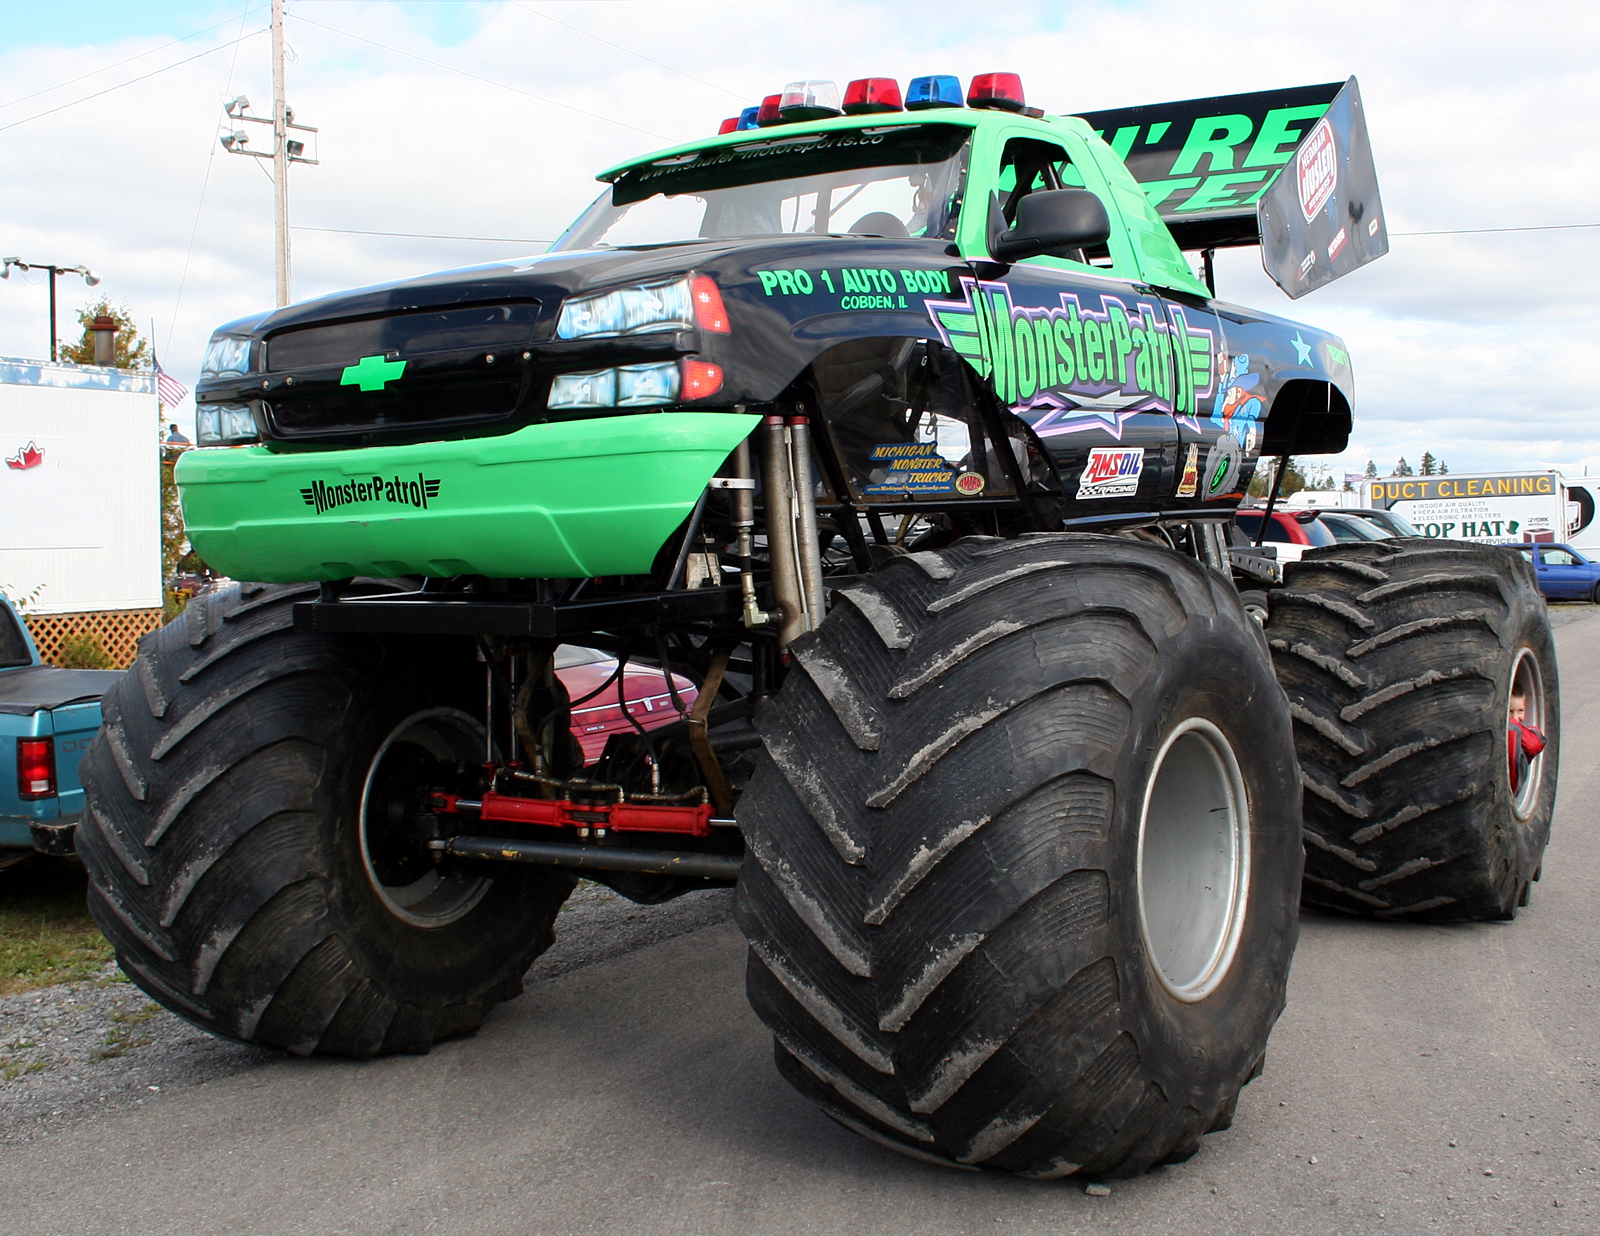 monstertrucks wallpaper 006 1600 1236jpg 1600x1236